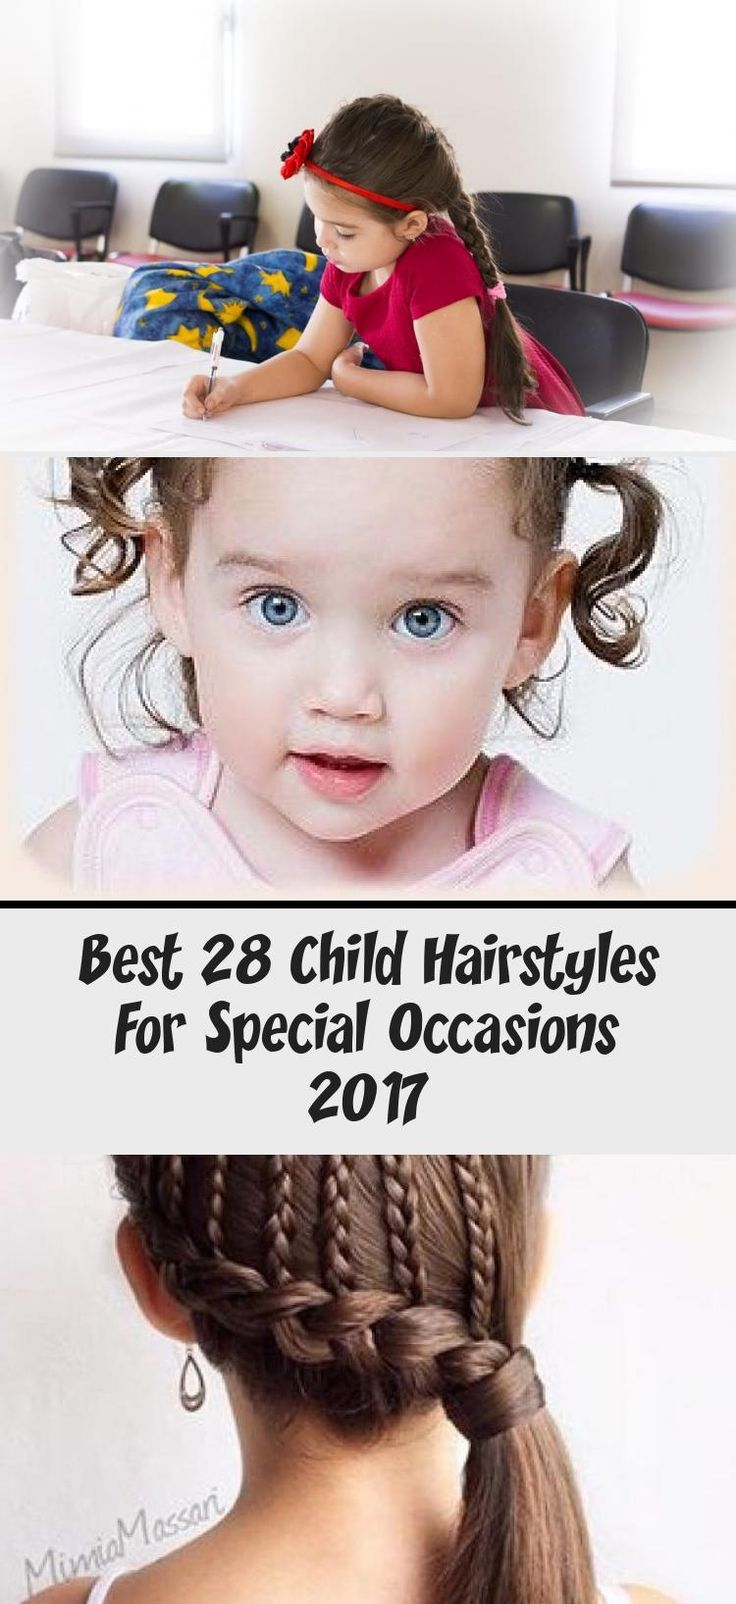 Best 28 child Hairstyles for Special occasions 2017 #babyhairstylesWhite #babyhairstylesWomen #Smallbabyhairstyles #babyhairstylesWithHeadband #babyhairstylesPonytails